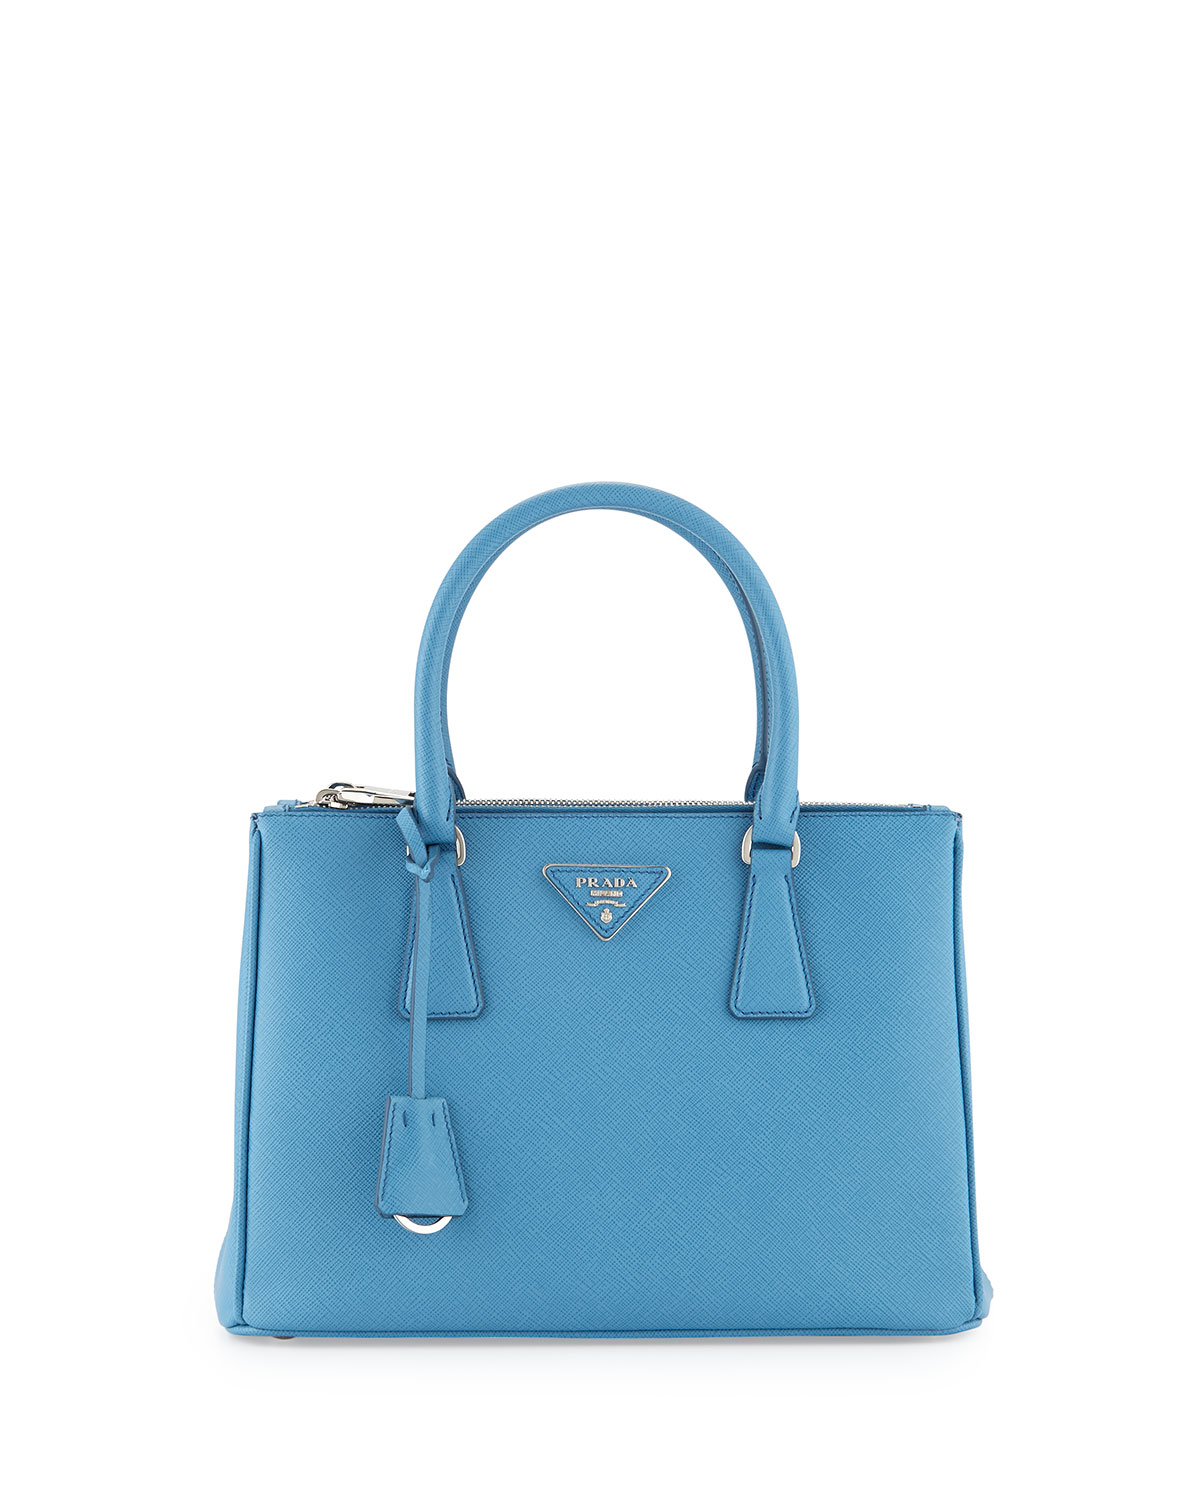 9f6b55bca550 Prada Saffiano Lux Small Double-Zip Tote Bag, Light Blue (Mare ...